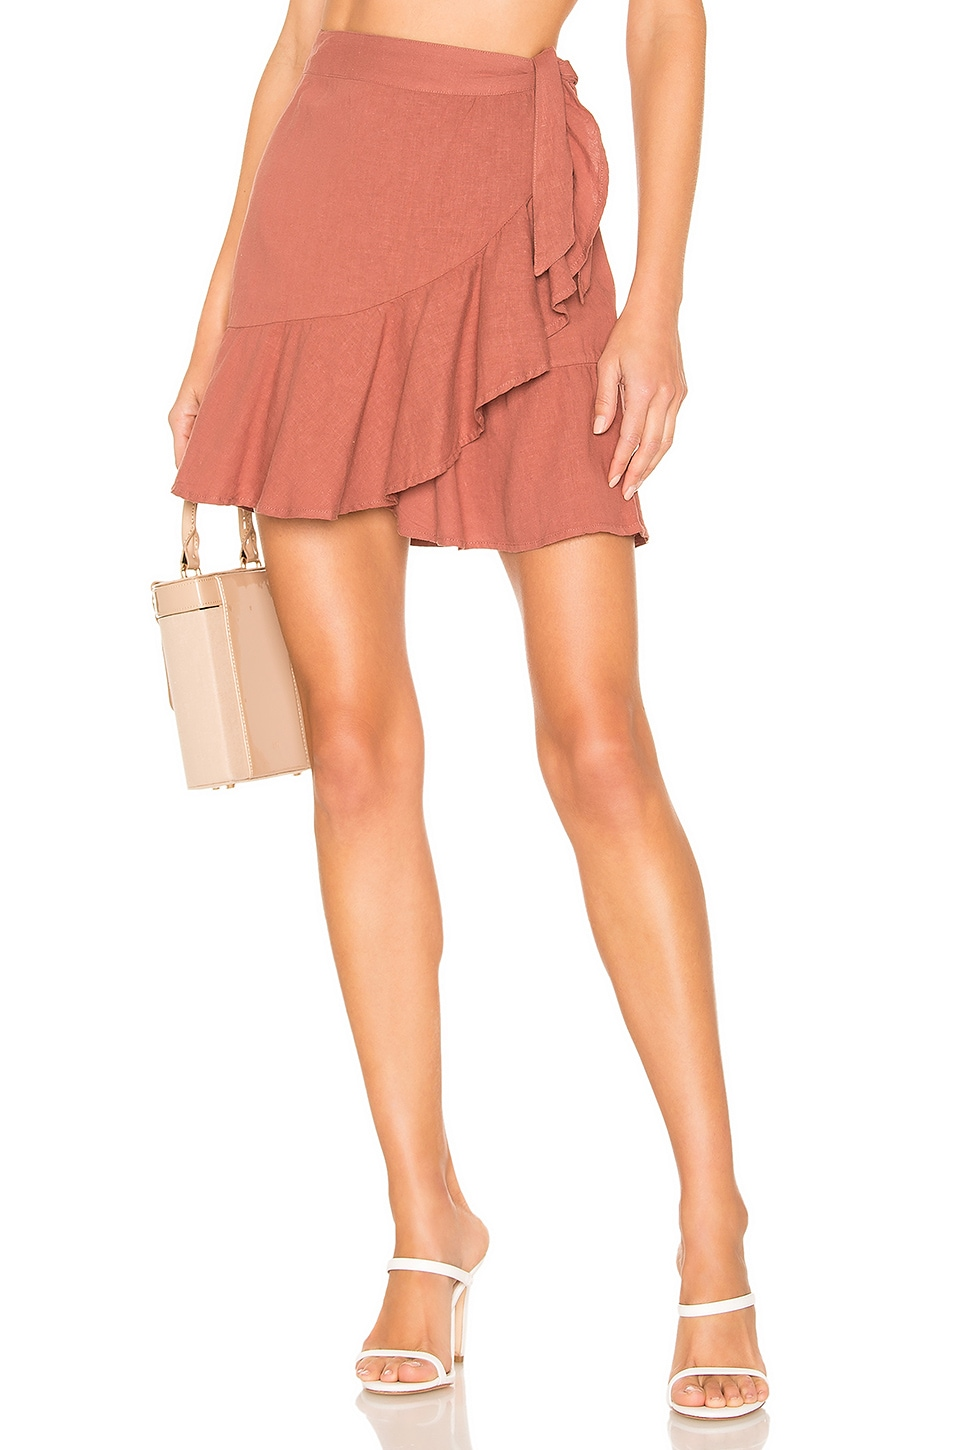 Free People Ruffle My Feathers Mini Skirt in Rose